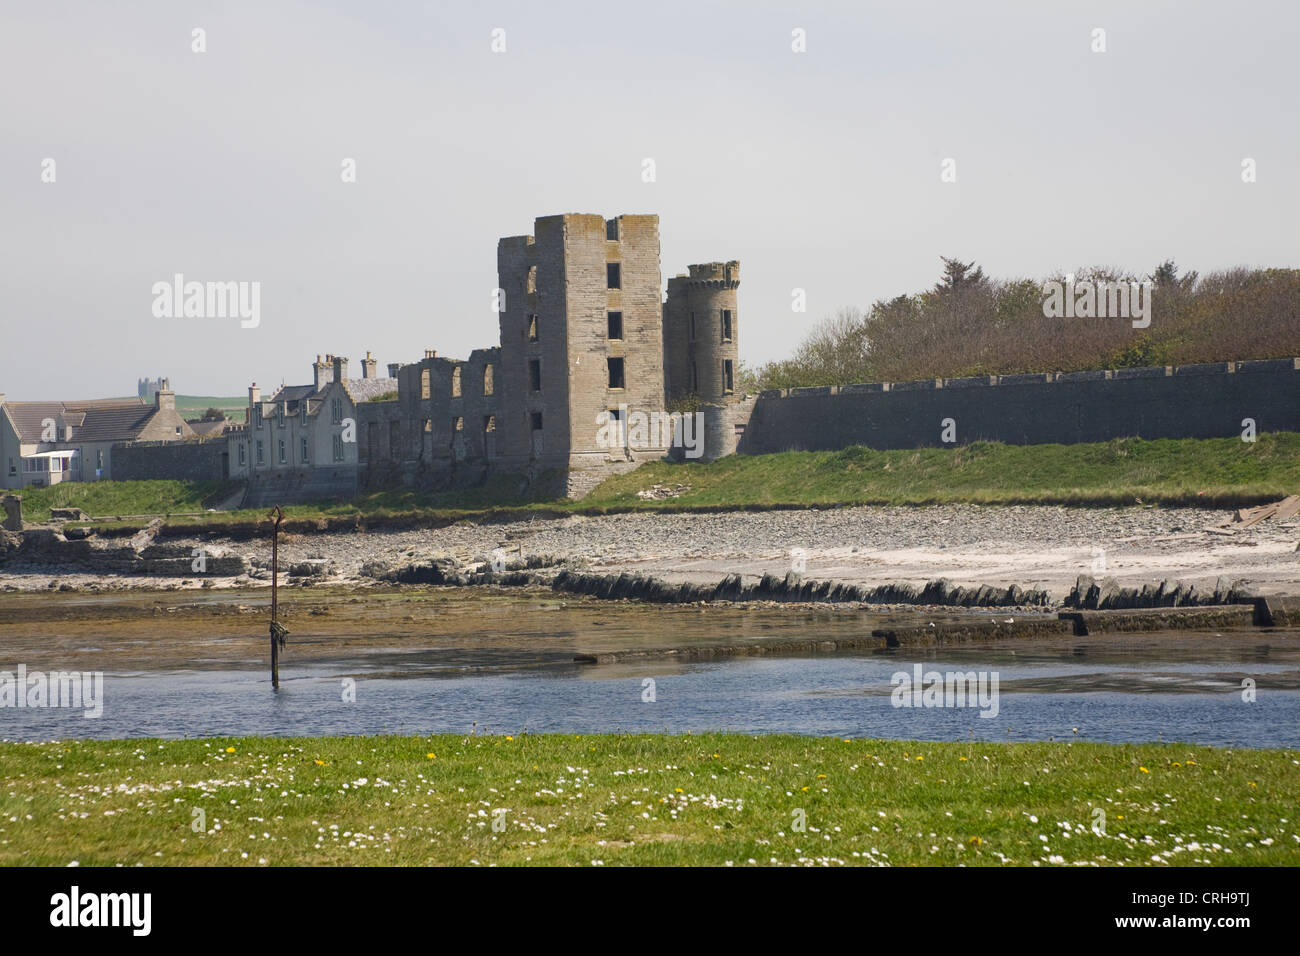 Thurso Caithness North Scotland UK View over River Thurso to ruins of Thurso Castle the northernmost town on the - Stock Image